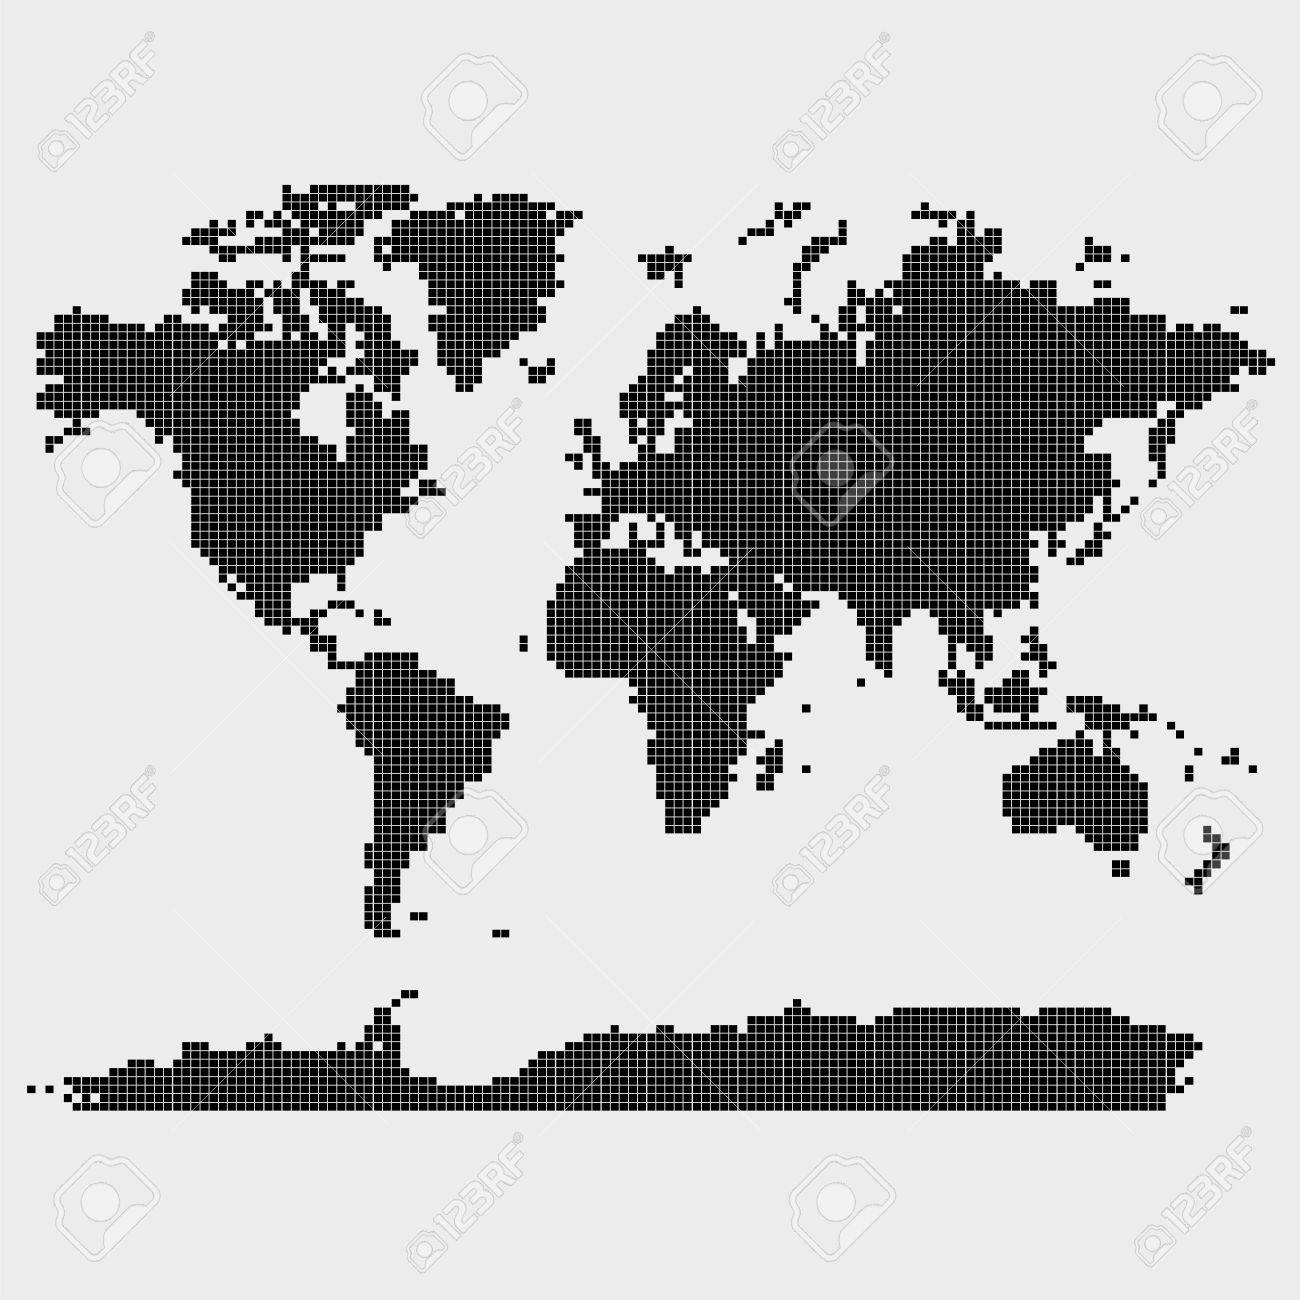 World map in squares vector 5512 squares elements royalty free vector world map in squares vector 5512 squares elements gumiabroncs Choice Image